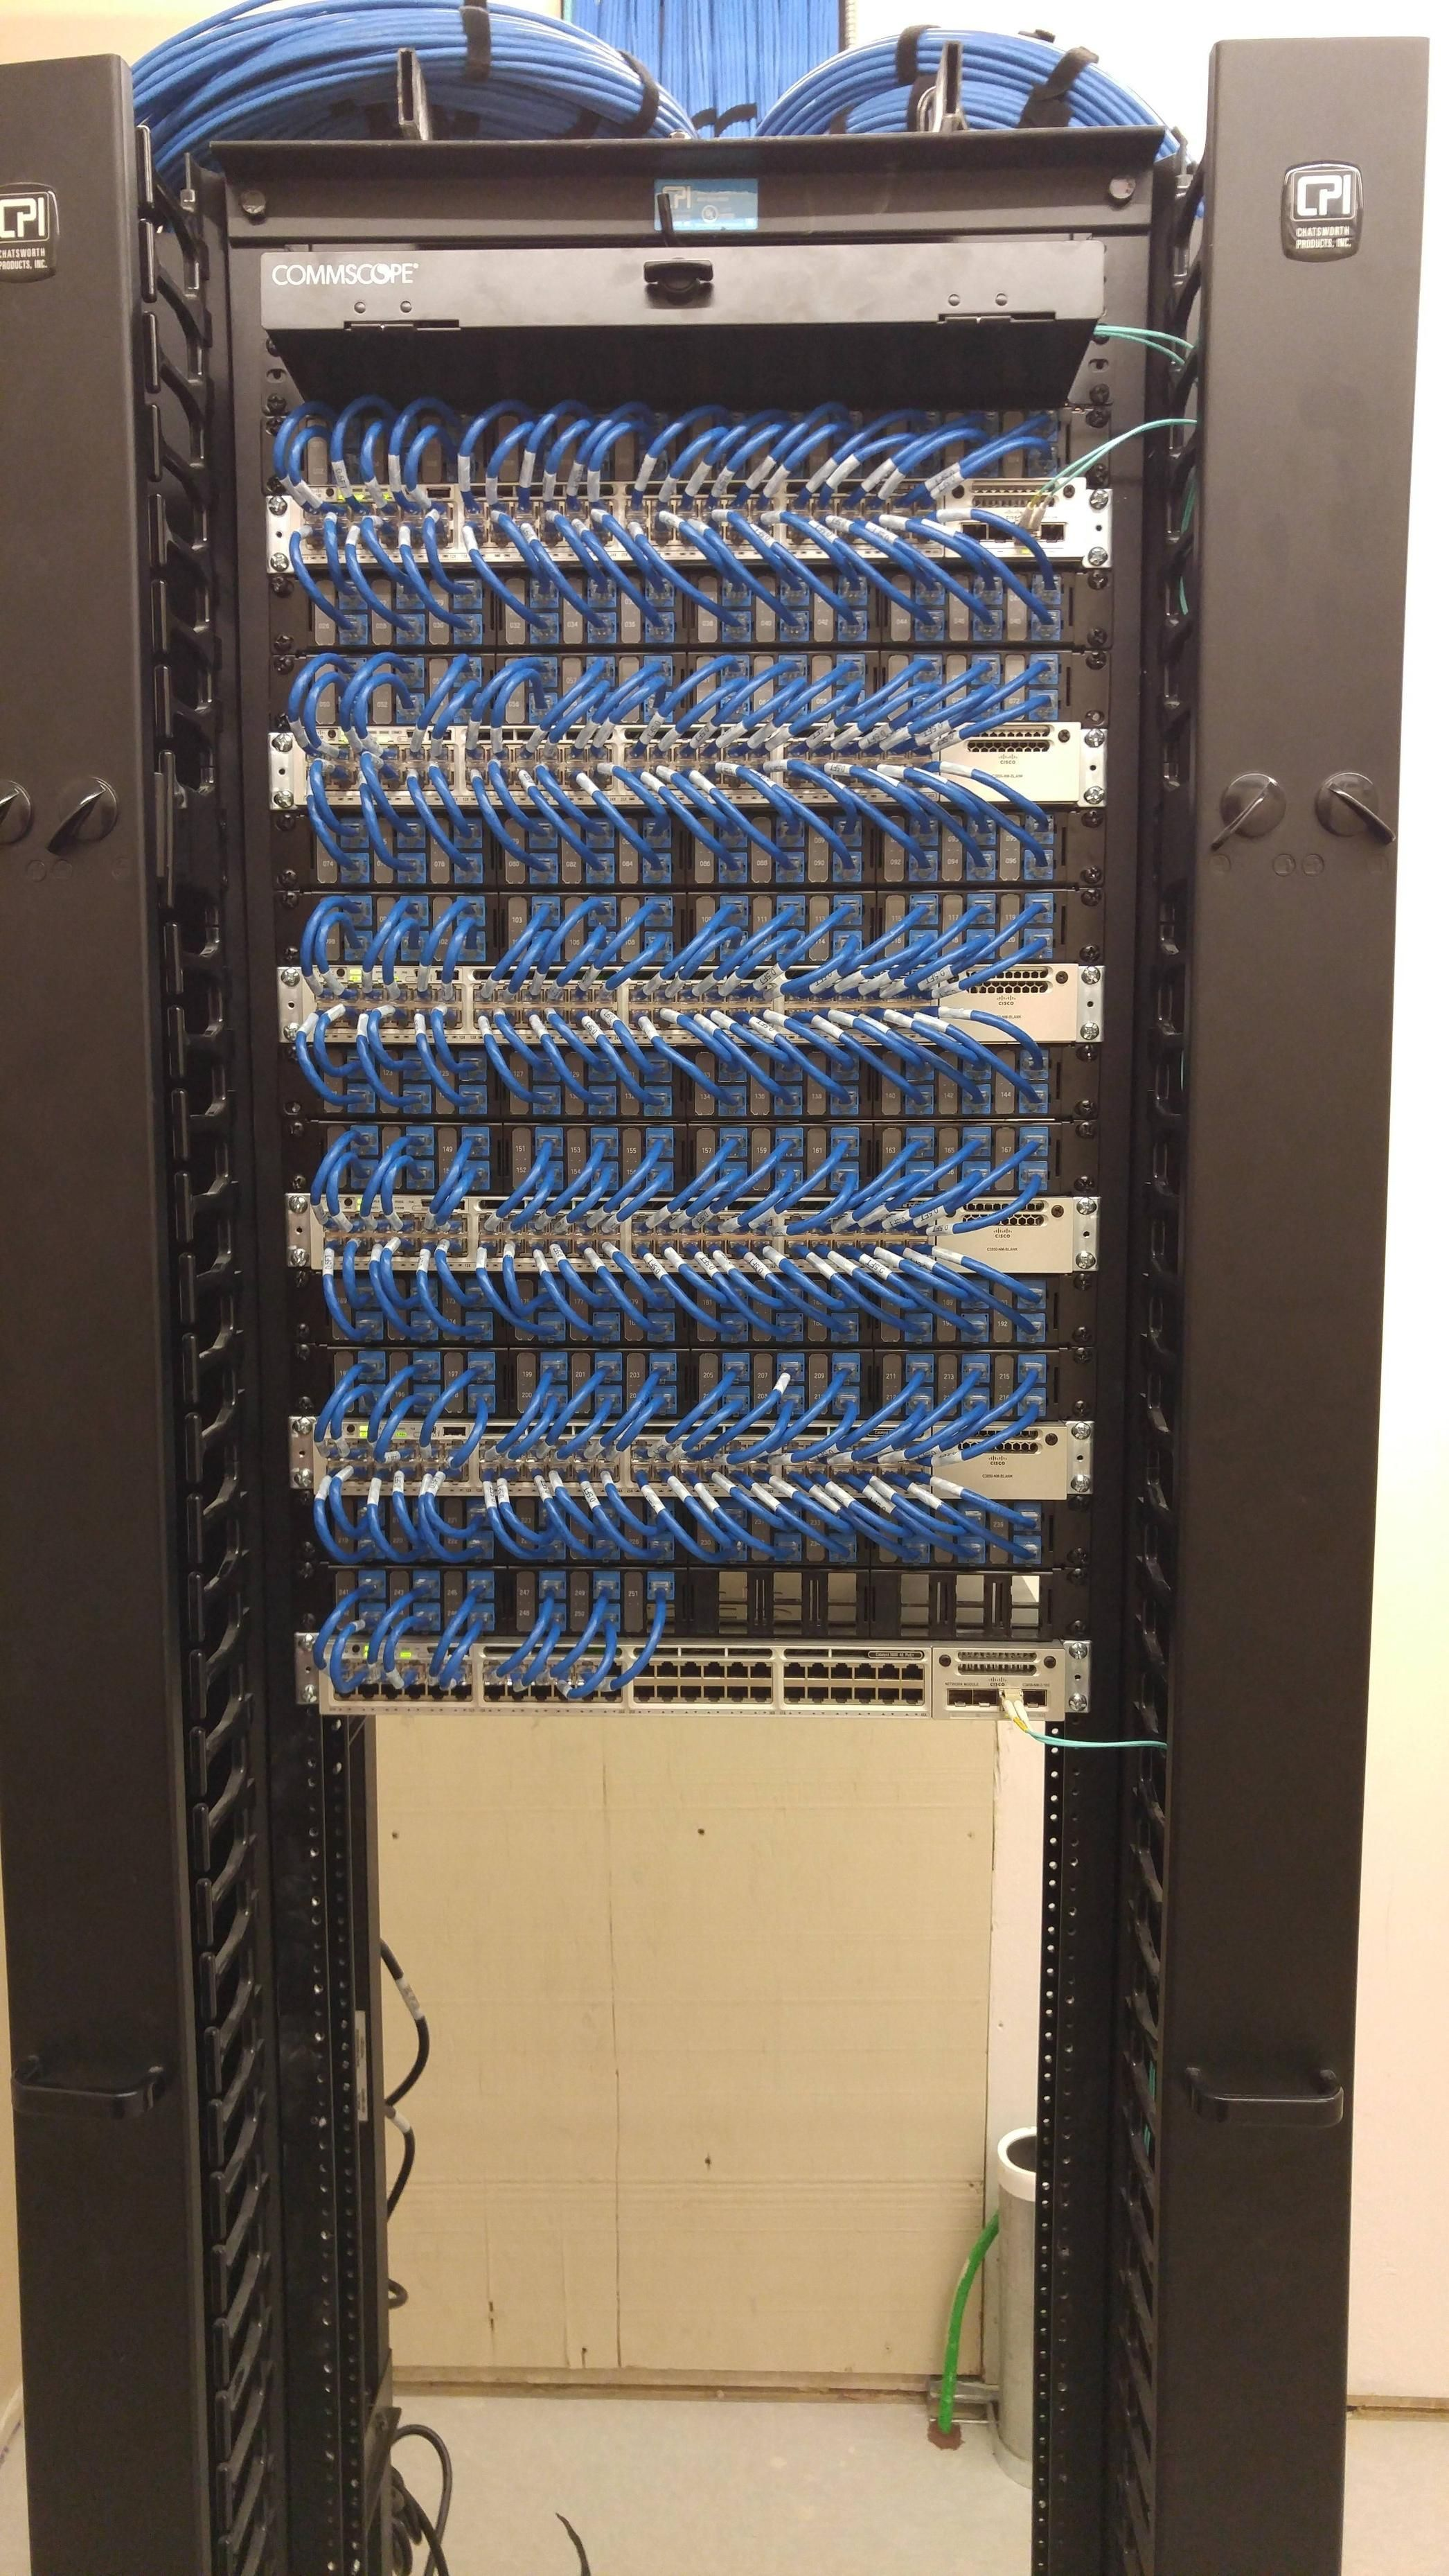 new idf closets network rack it network network cable server cabinet server [ 2092 x 3718 Pixel ]